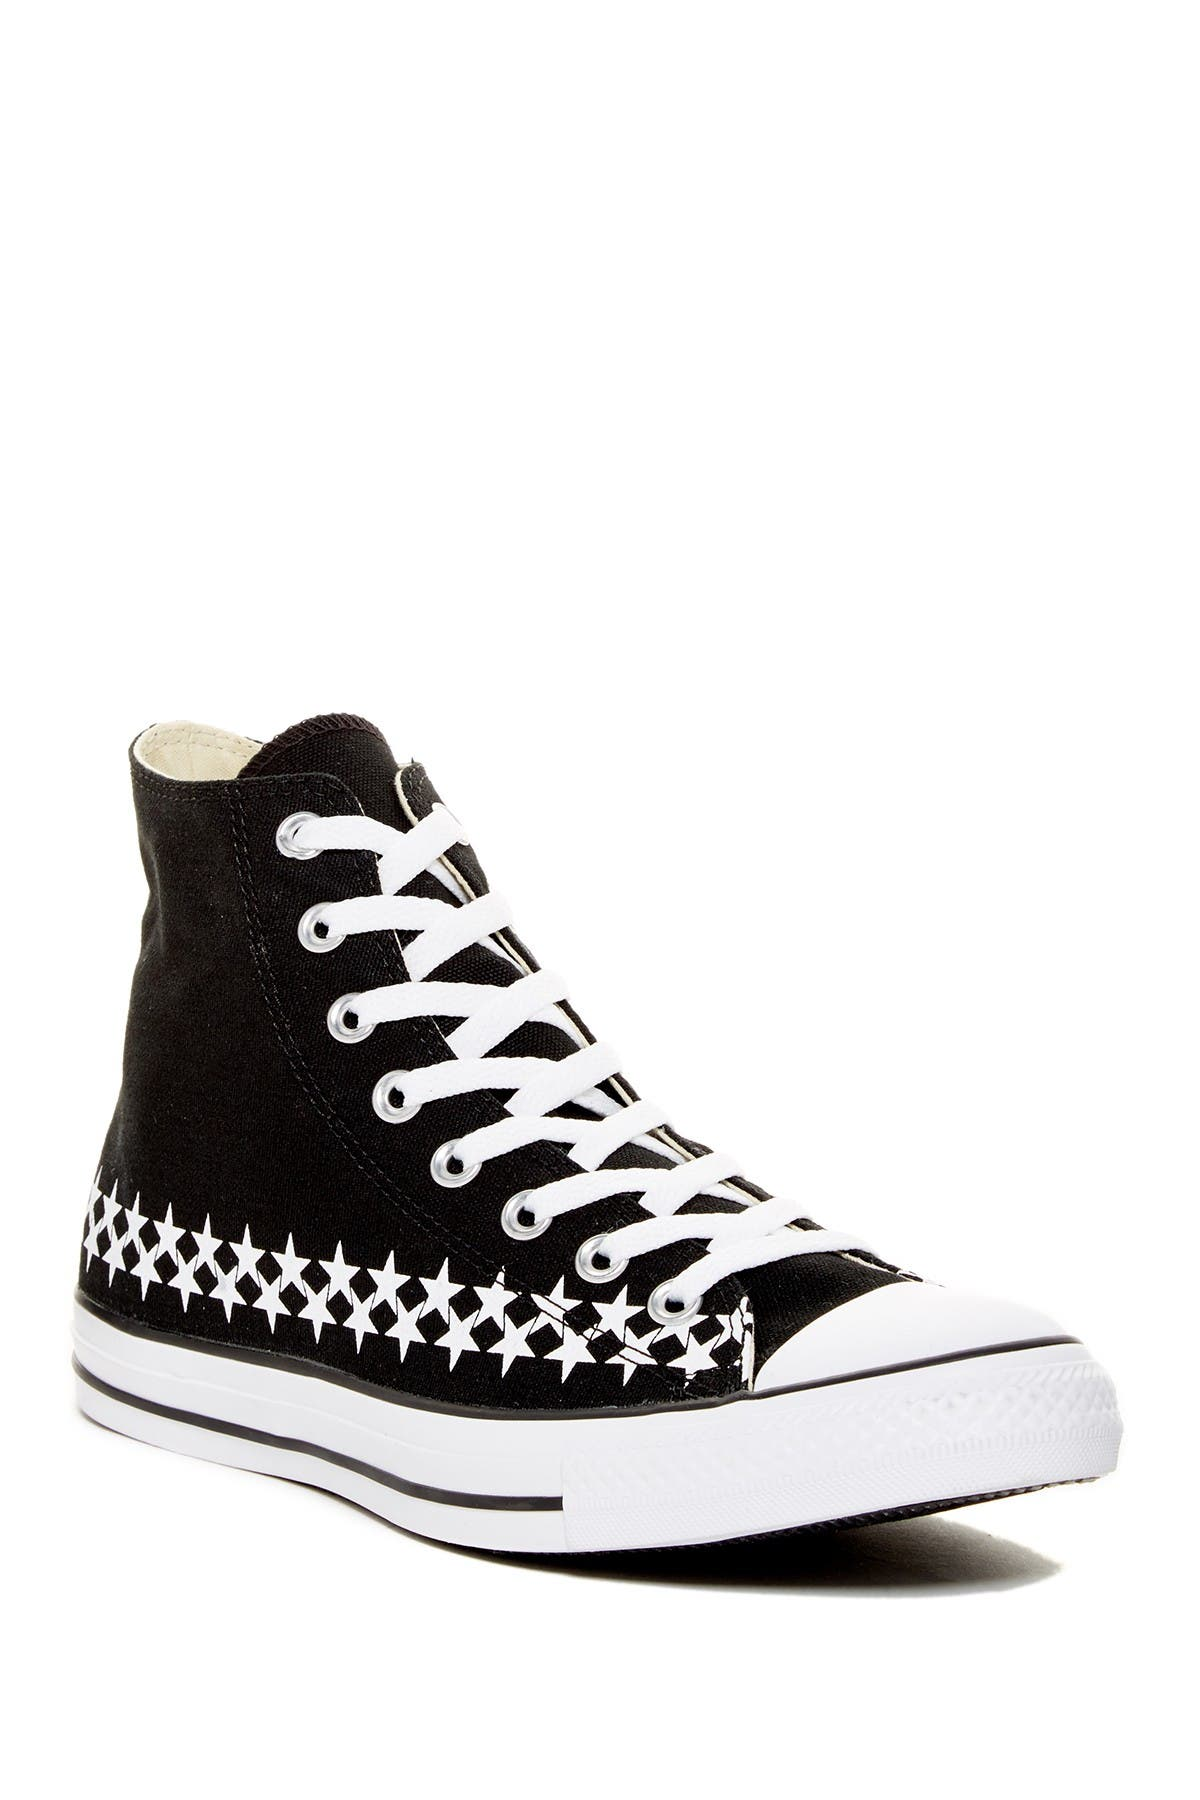 Image of Converse Chuck Taylor